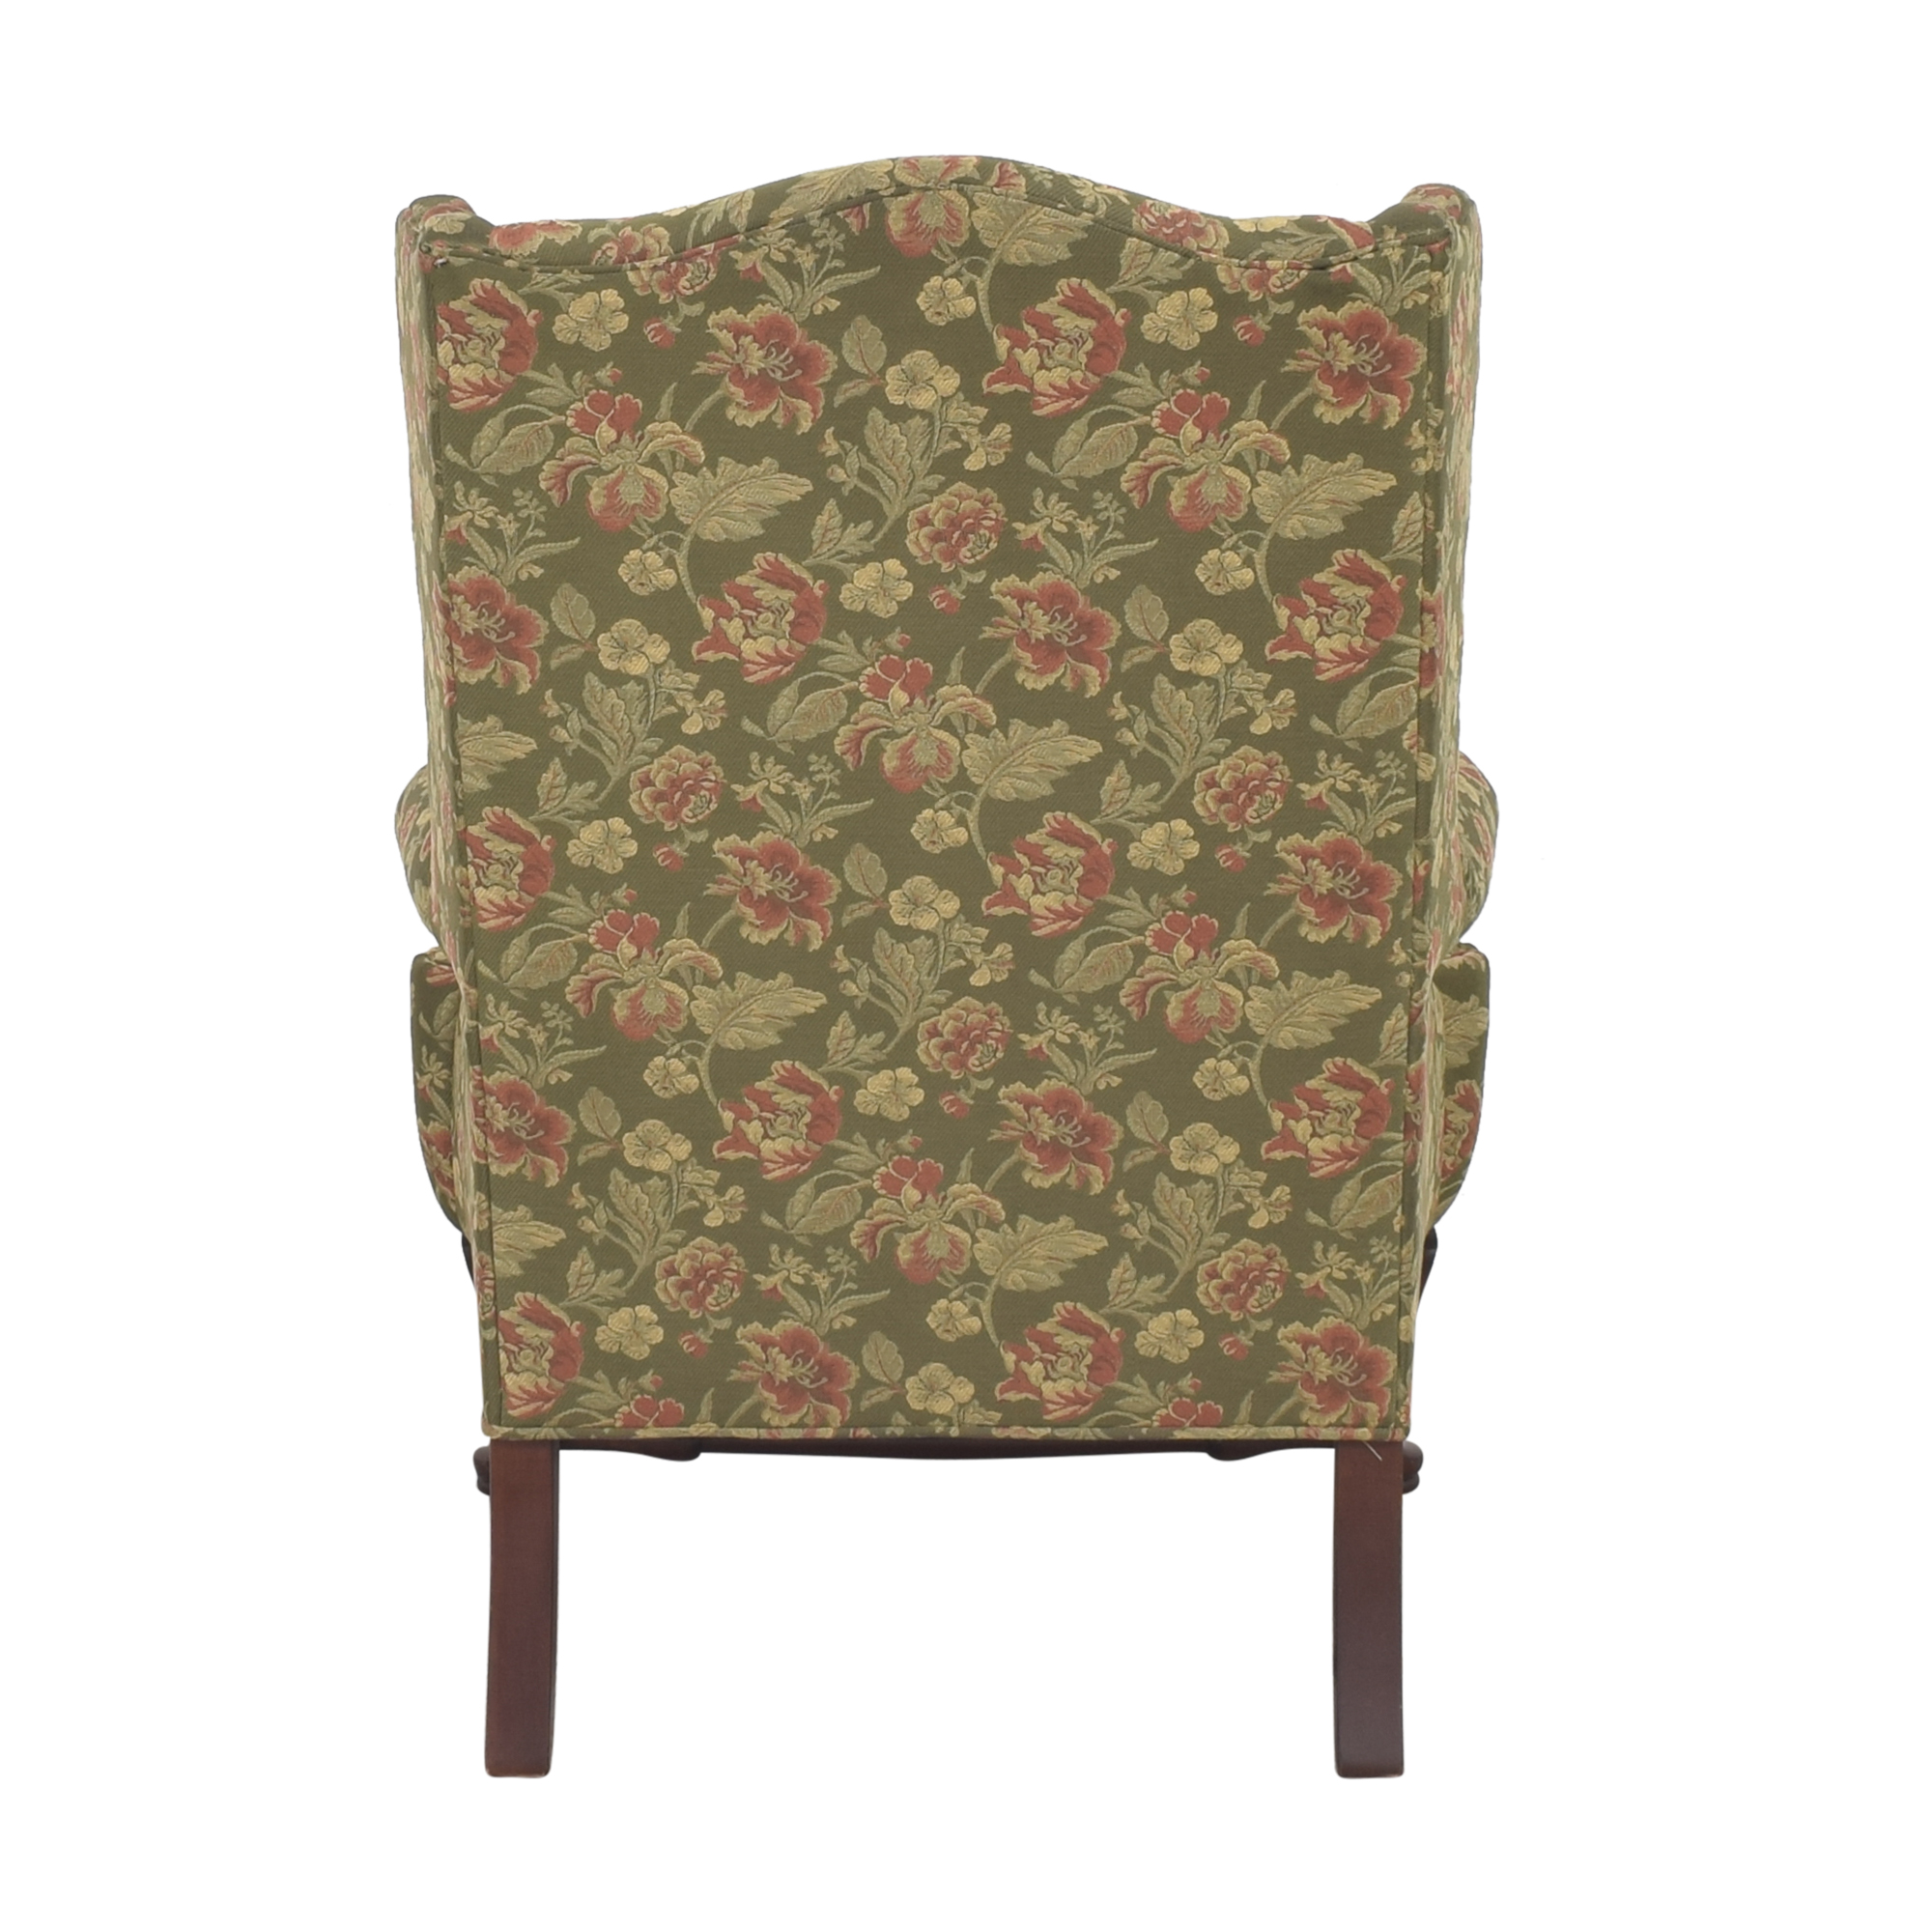 Ethan Allen Ethan Allen Wing Back Accent Chair on sale